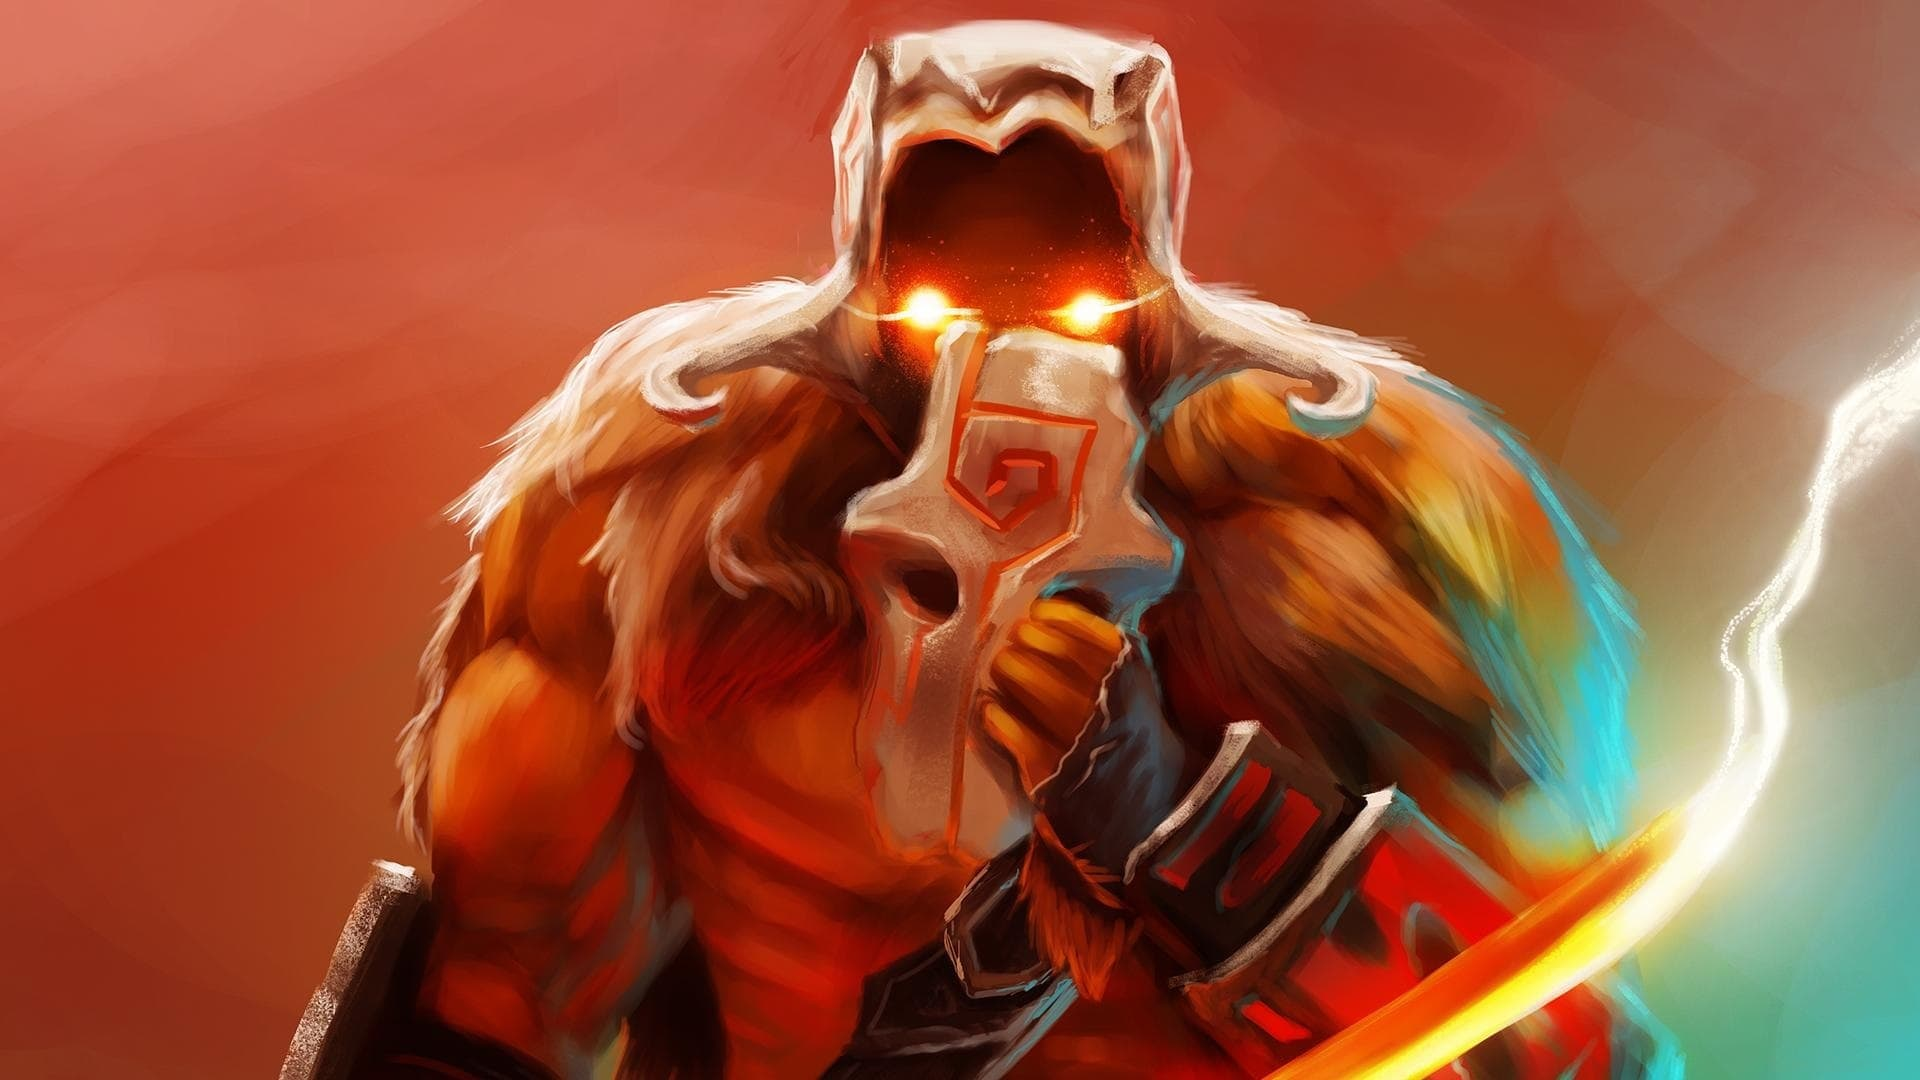 Dota2 : Juggernaut HD Desktop Wallpapers | 7wallpapers.net